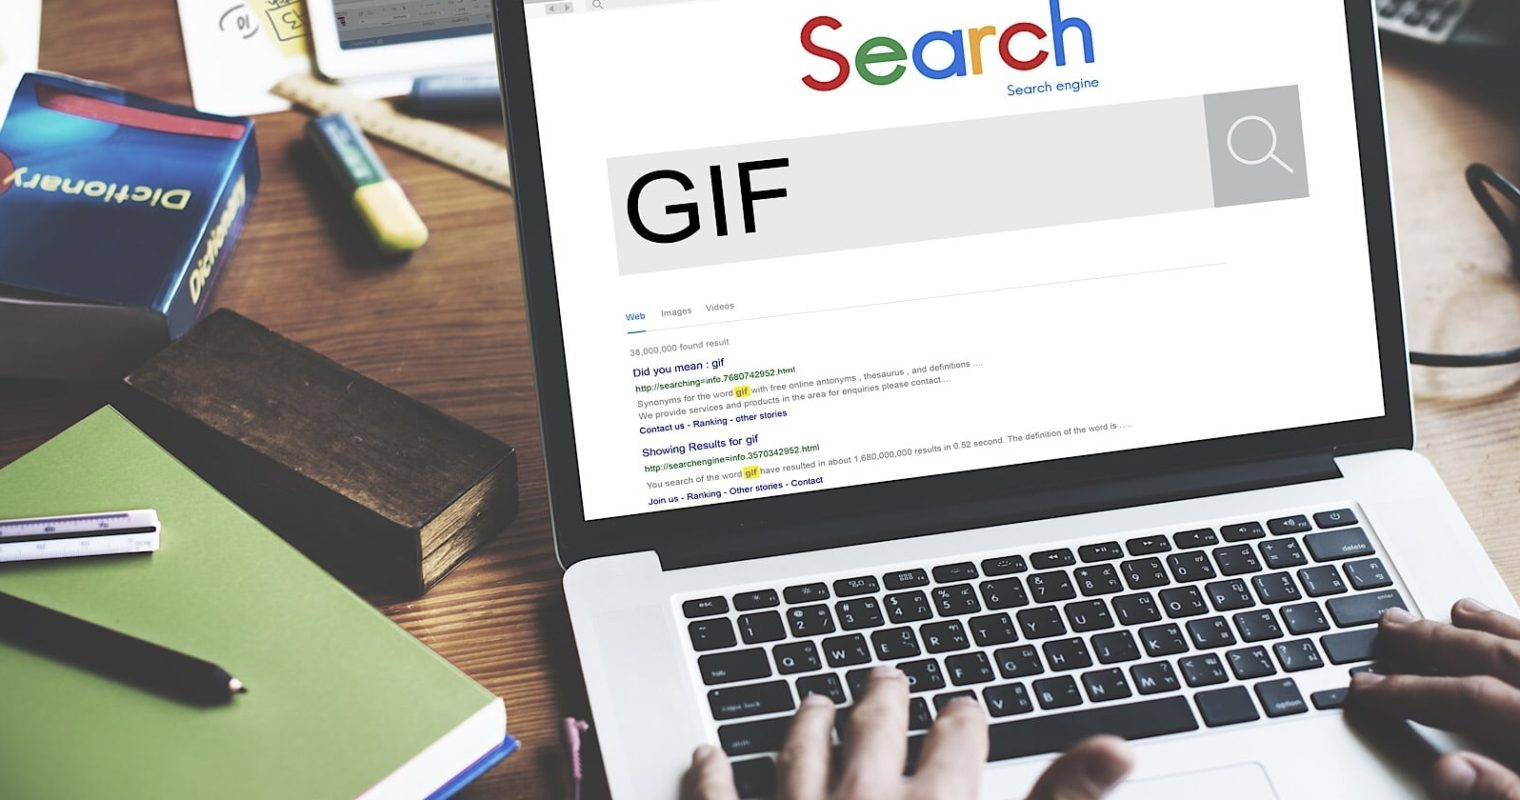 Google Images Makes it Easier to Find GIFs